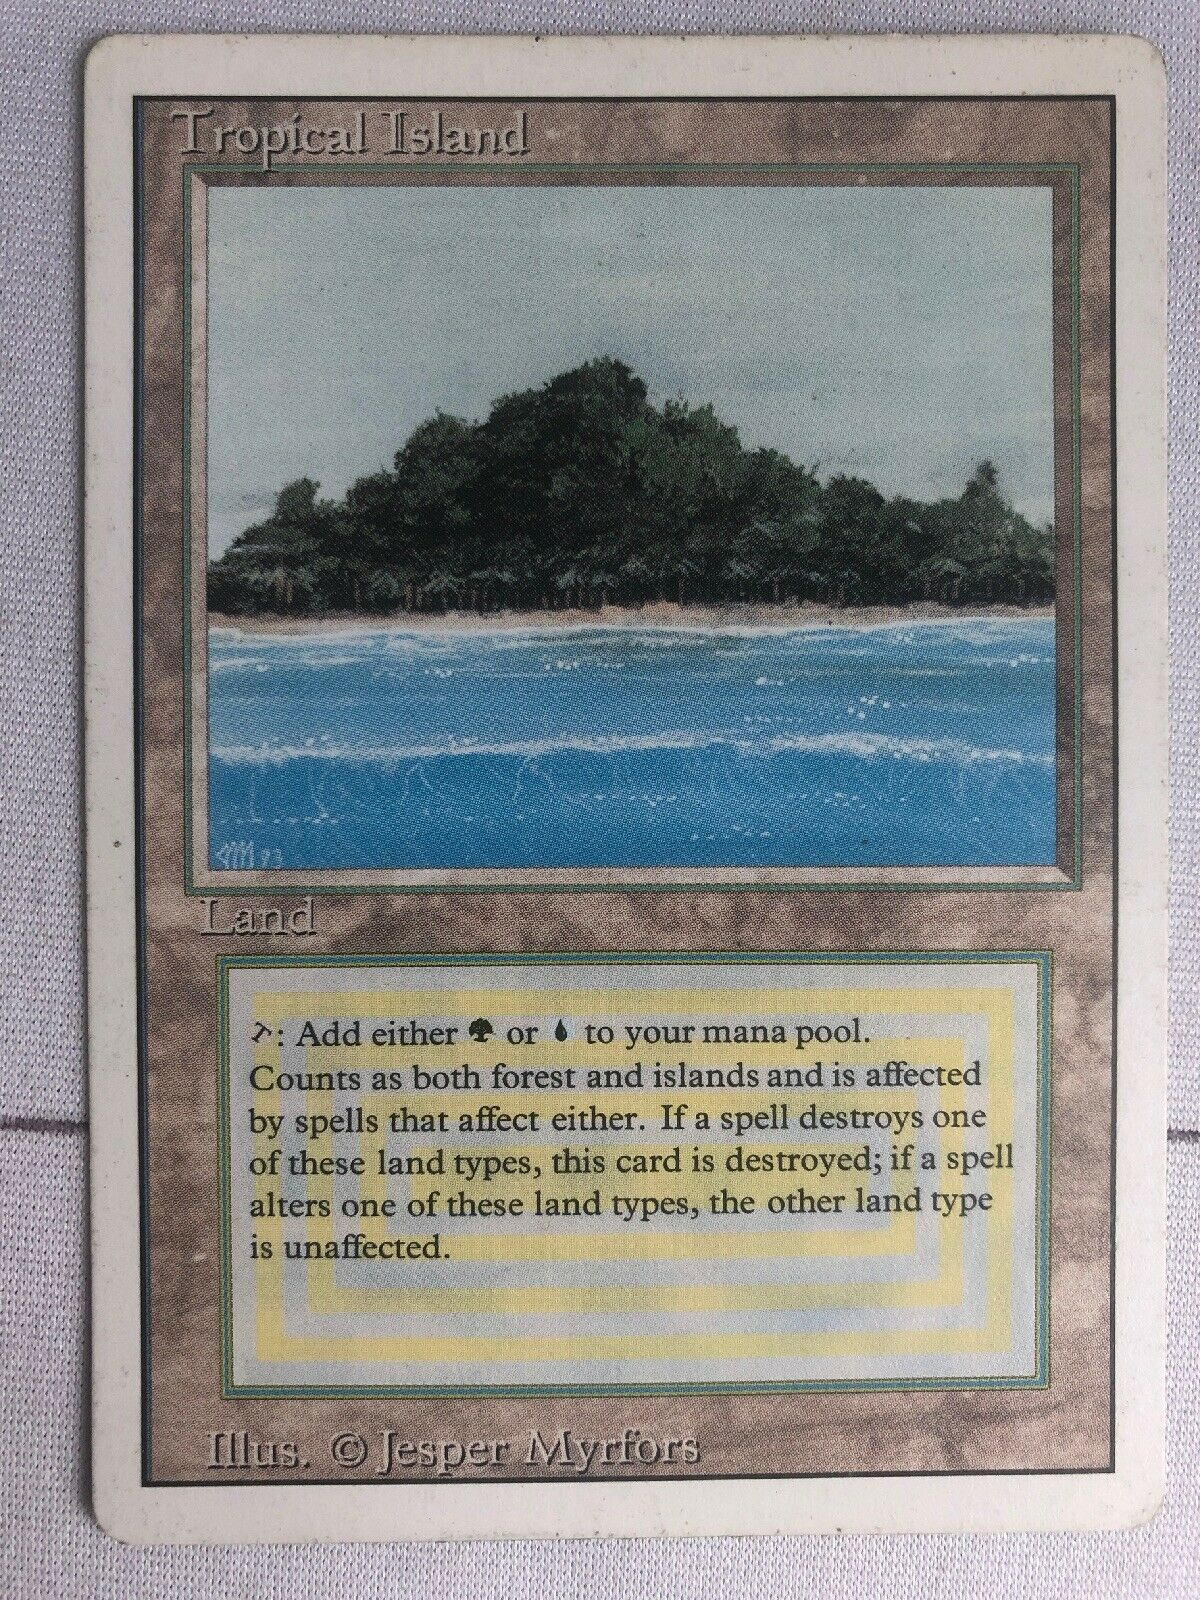 Mtg, Tropical Island, Revised, LP